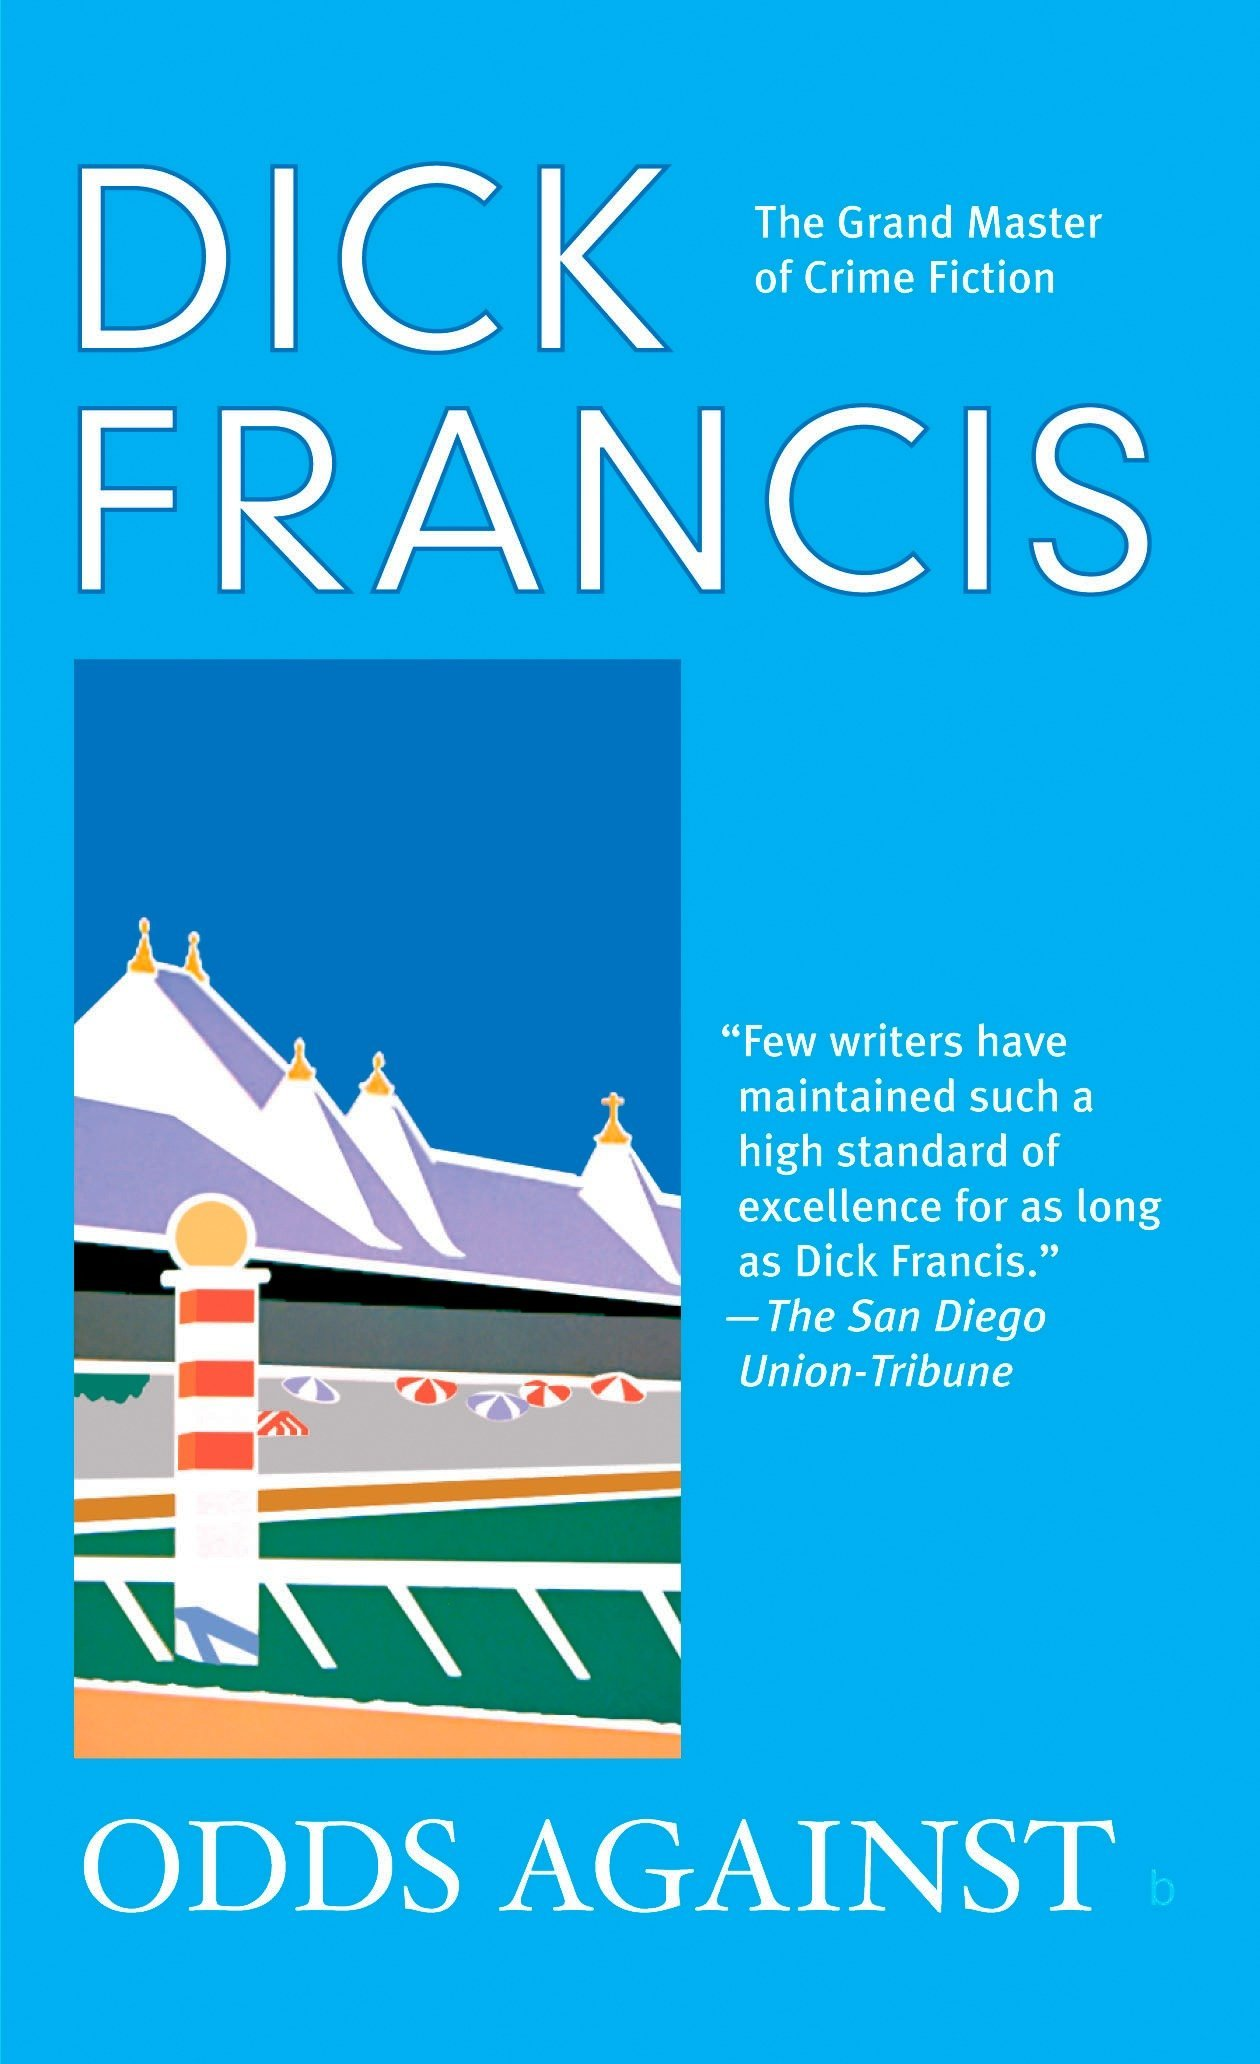 Dick francis odds against